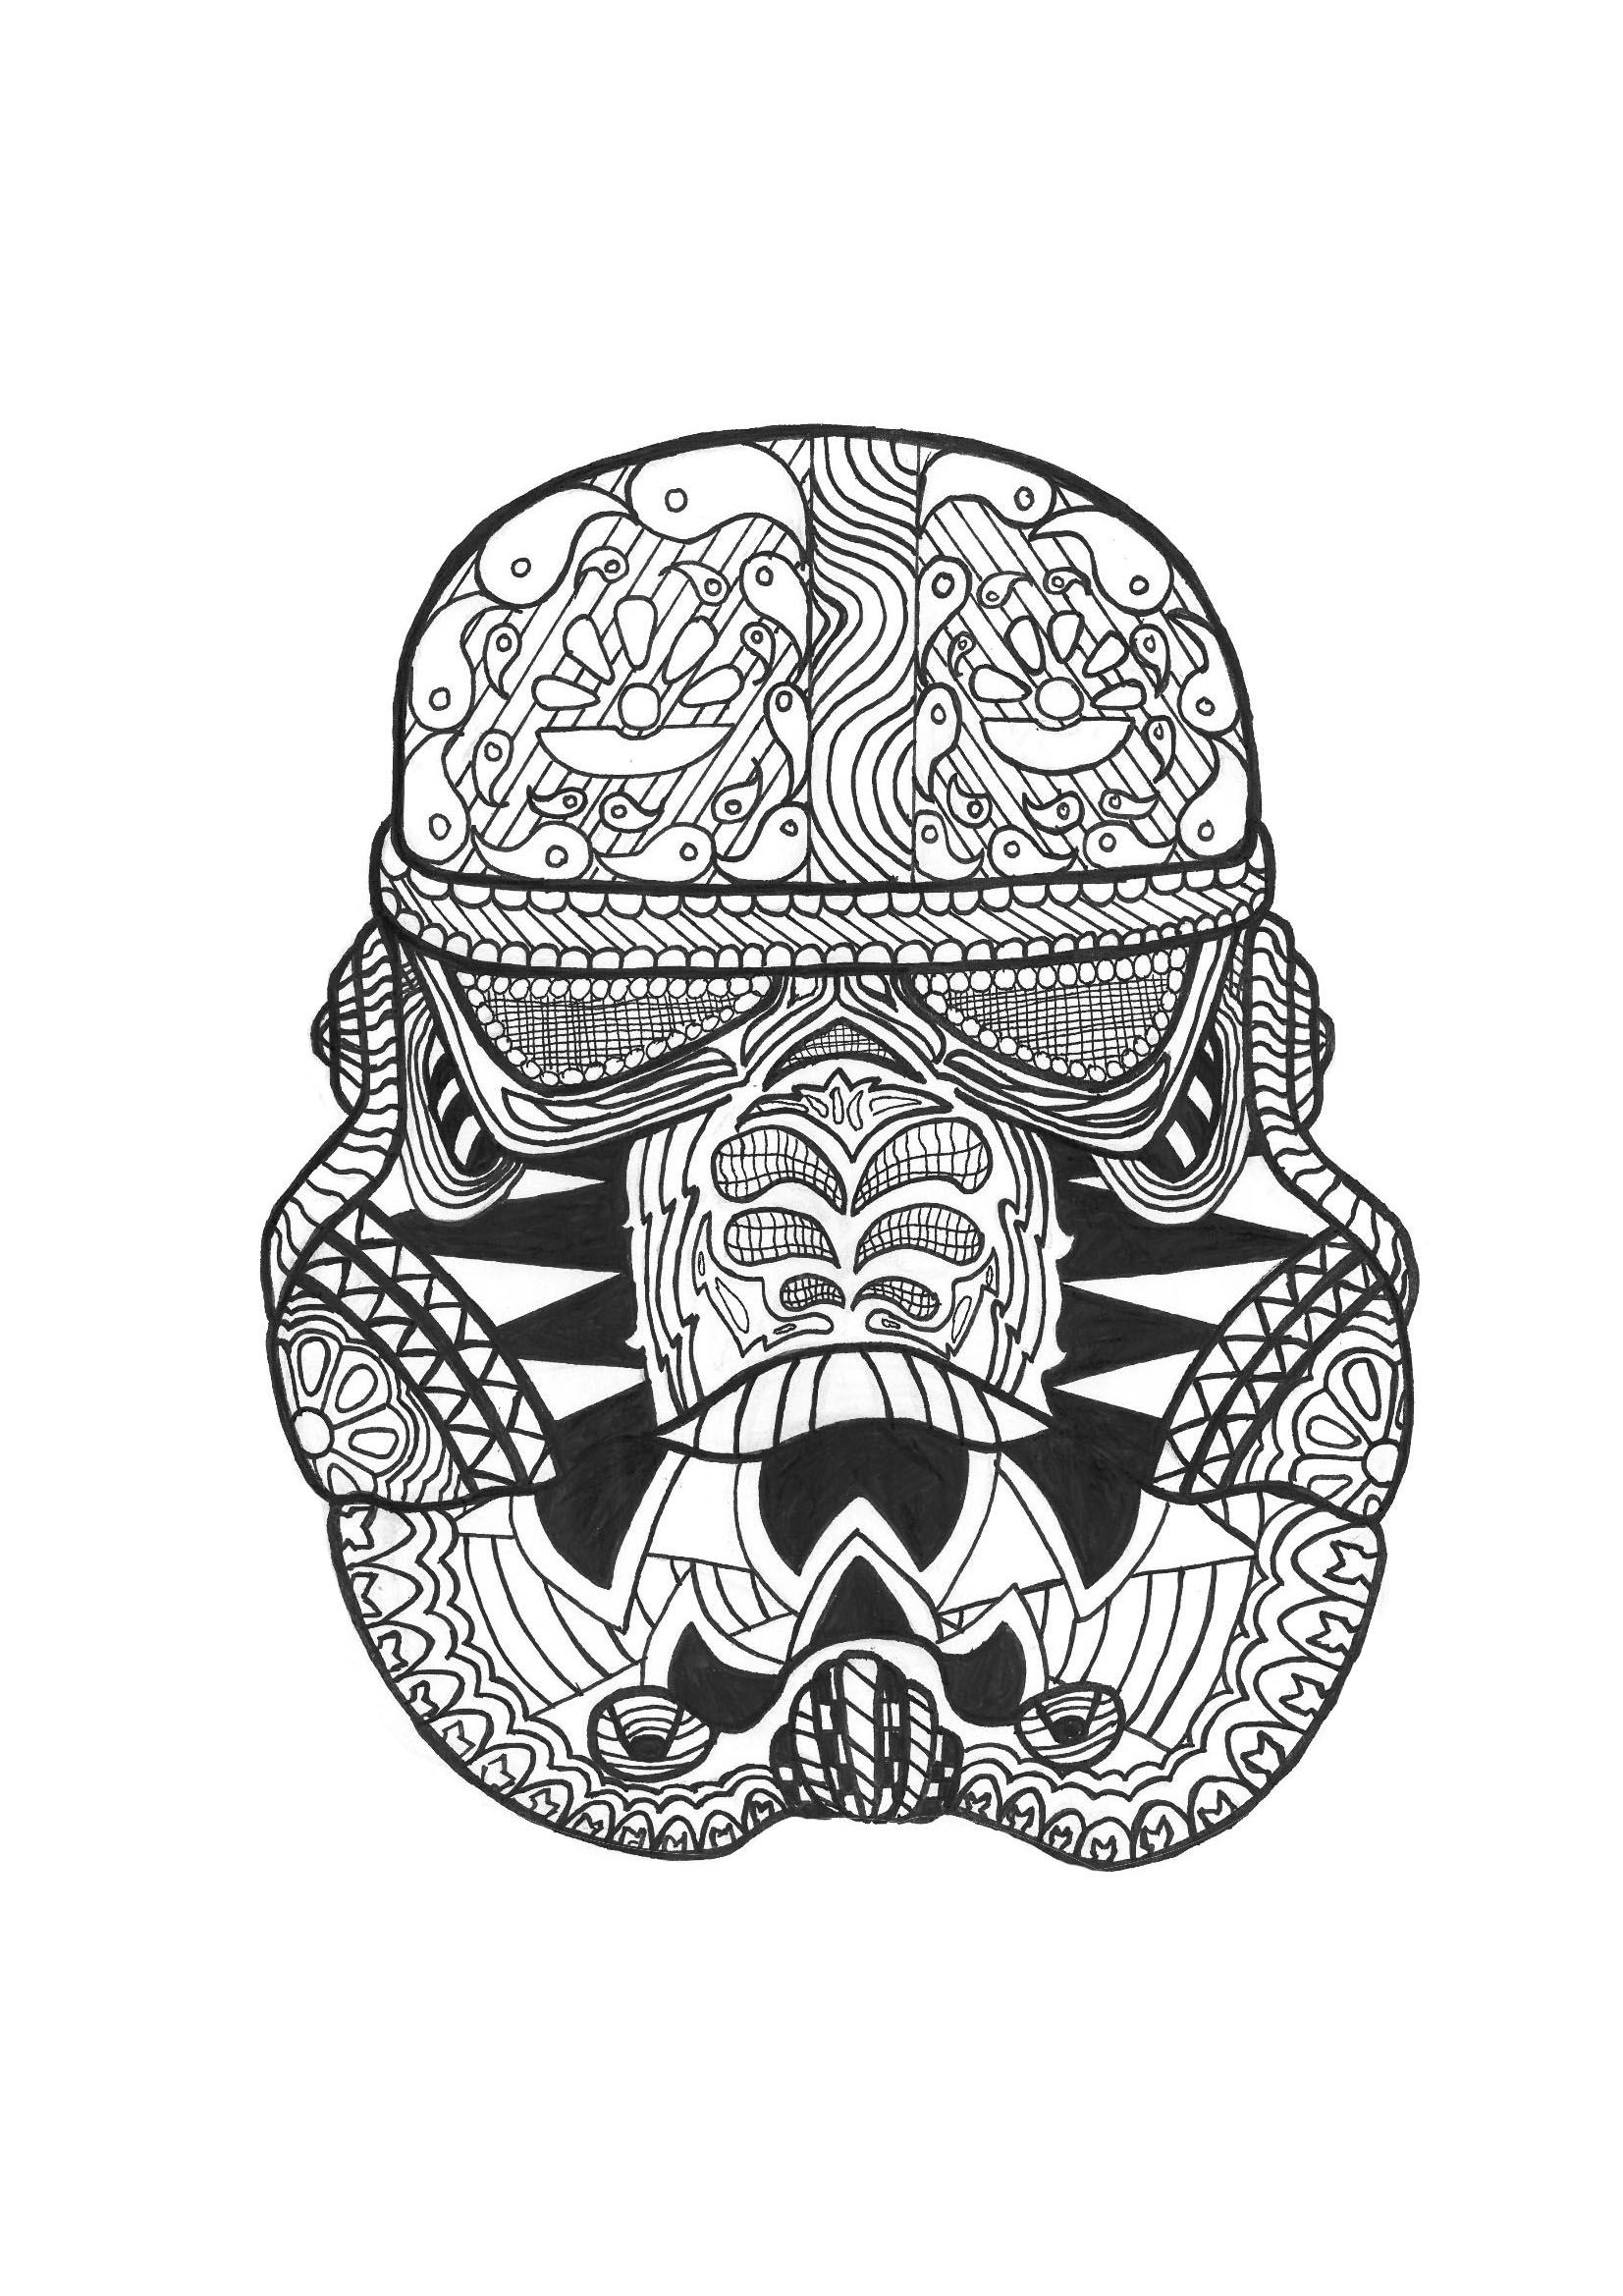 Zen stormtrooper Zen and Anti stress Coloring Pages for